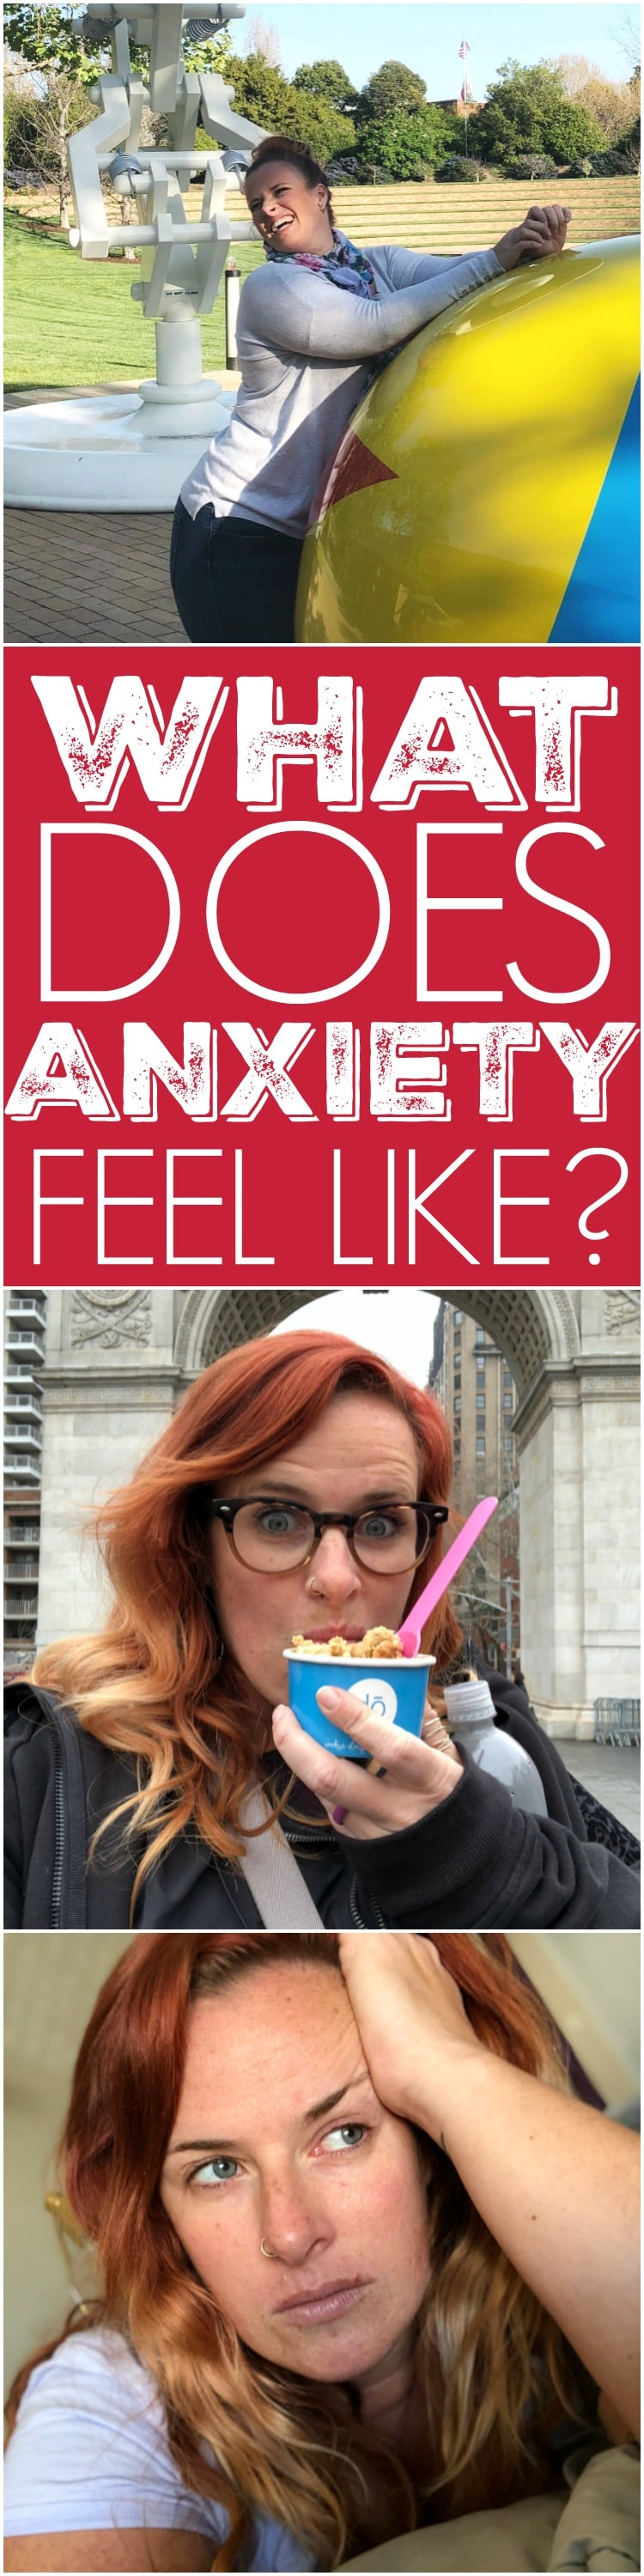 What does anxiety feel like?